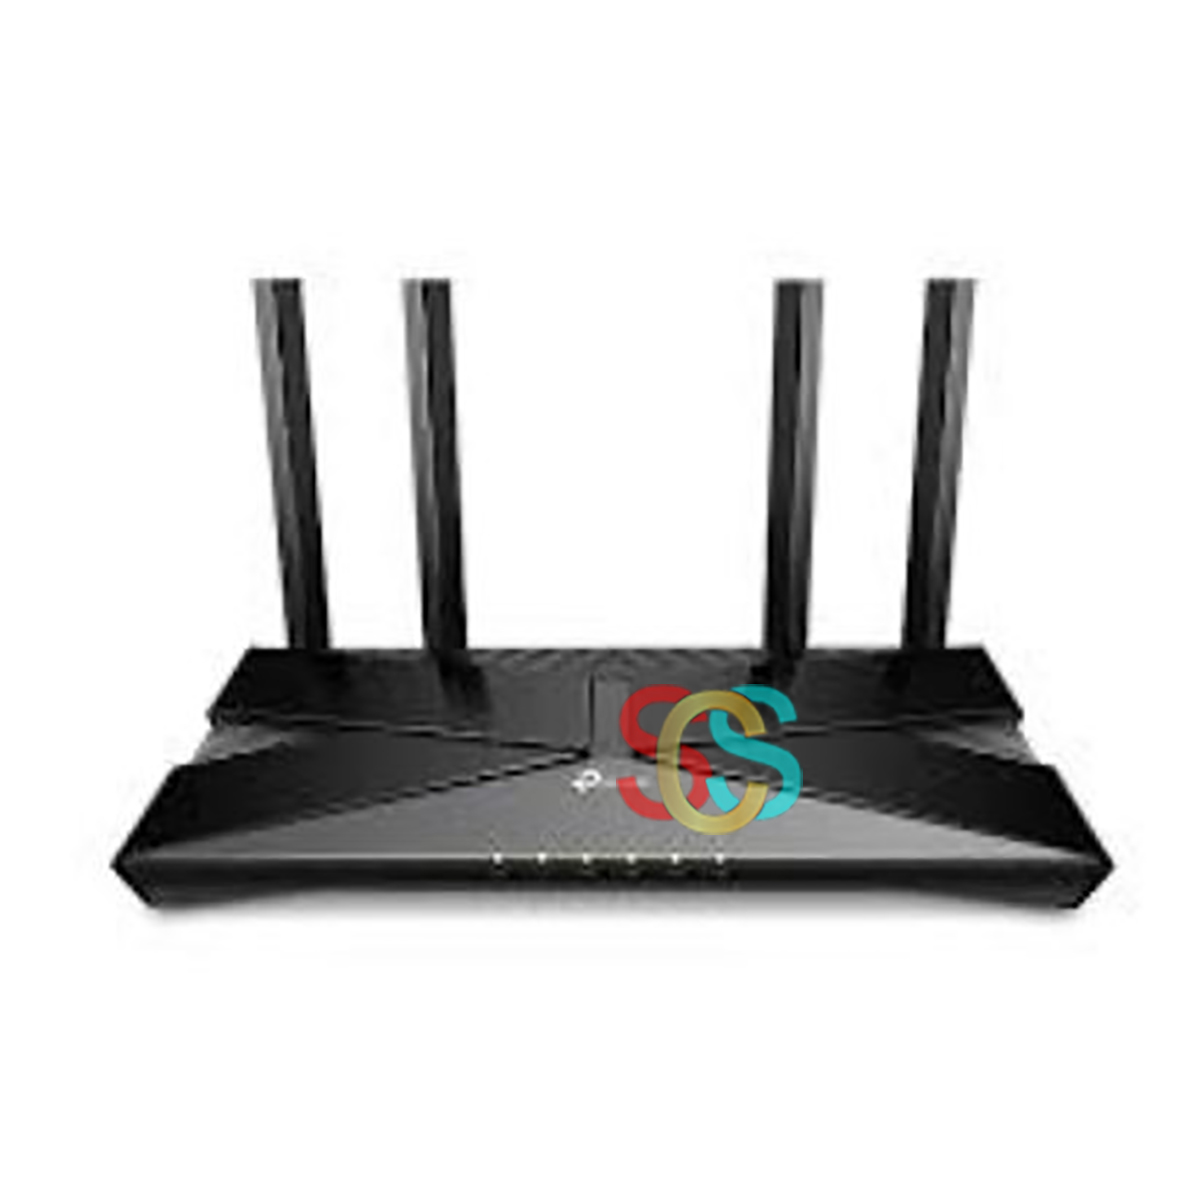 TP-Link Archer AX10 AX1500 Mbps Gigabit Dual-Band Wi-Fi 6 Router